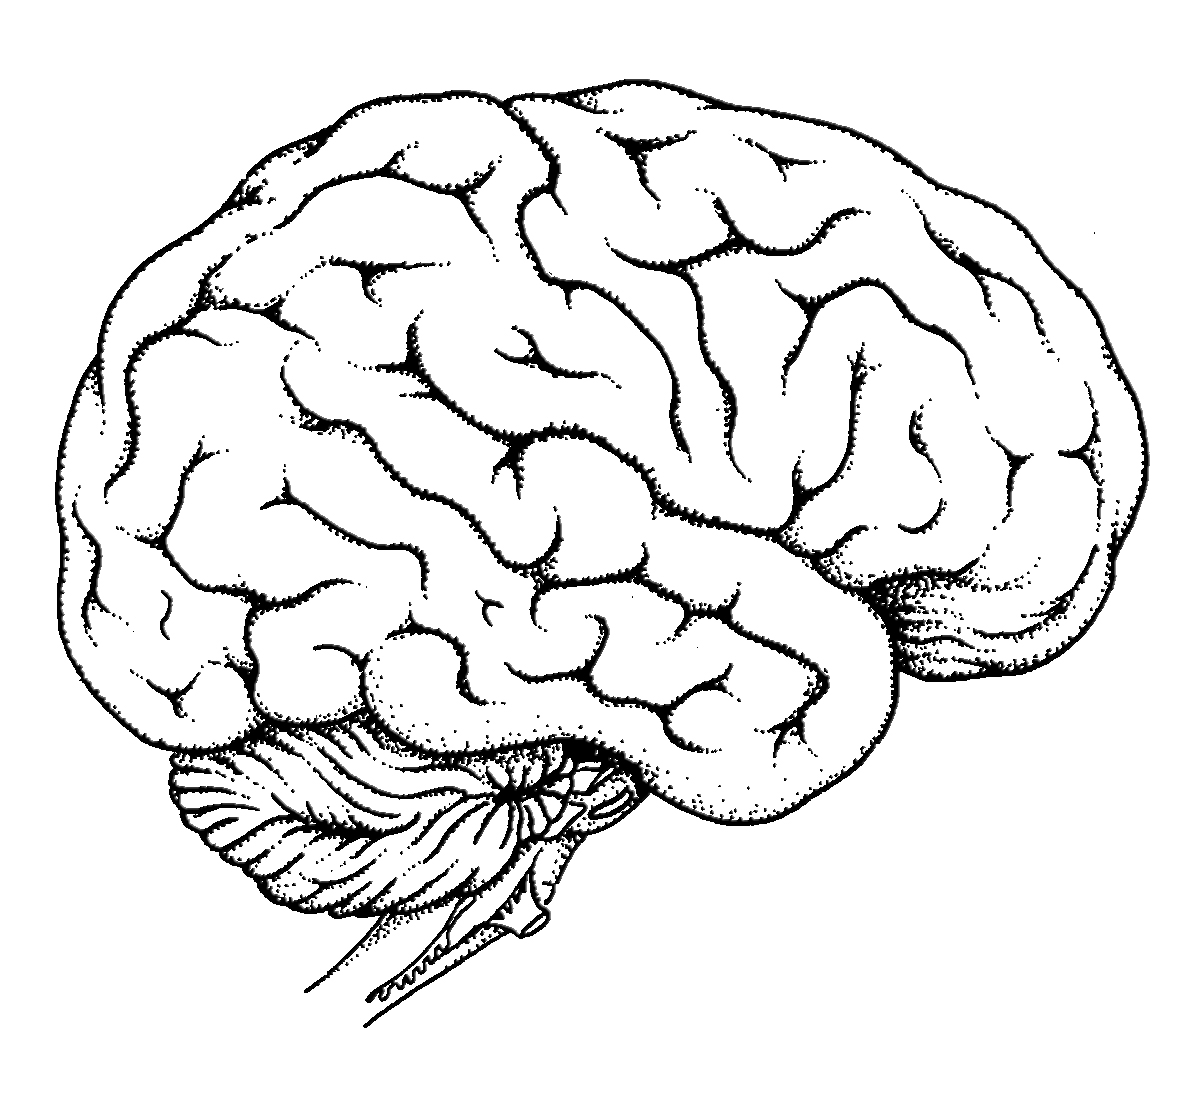 1198x1098 Diagram Of Human Brain